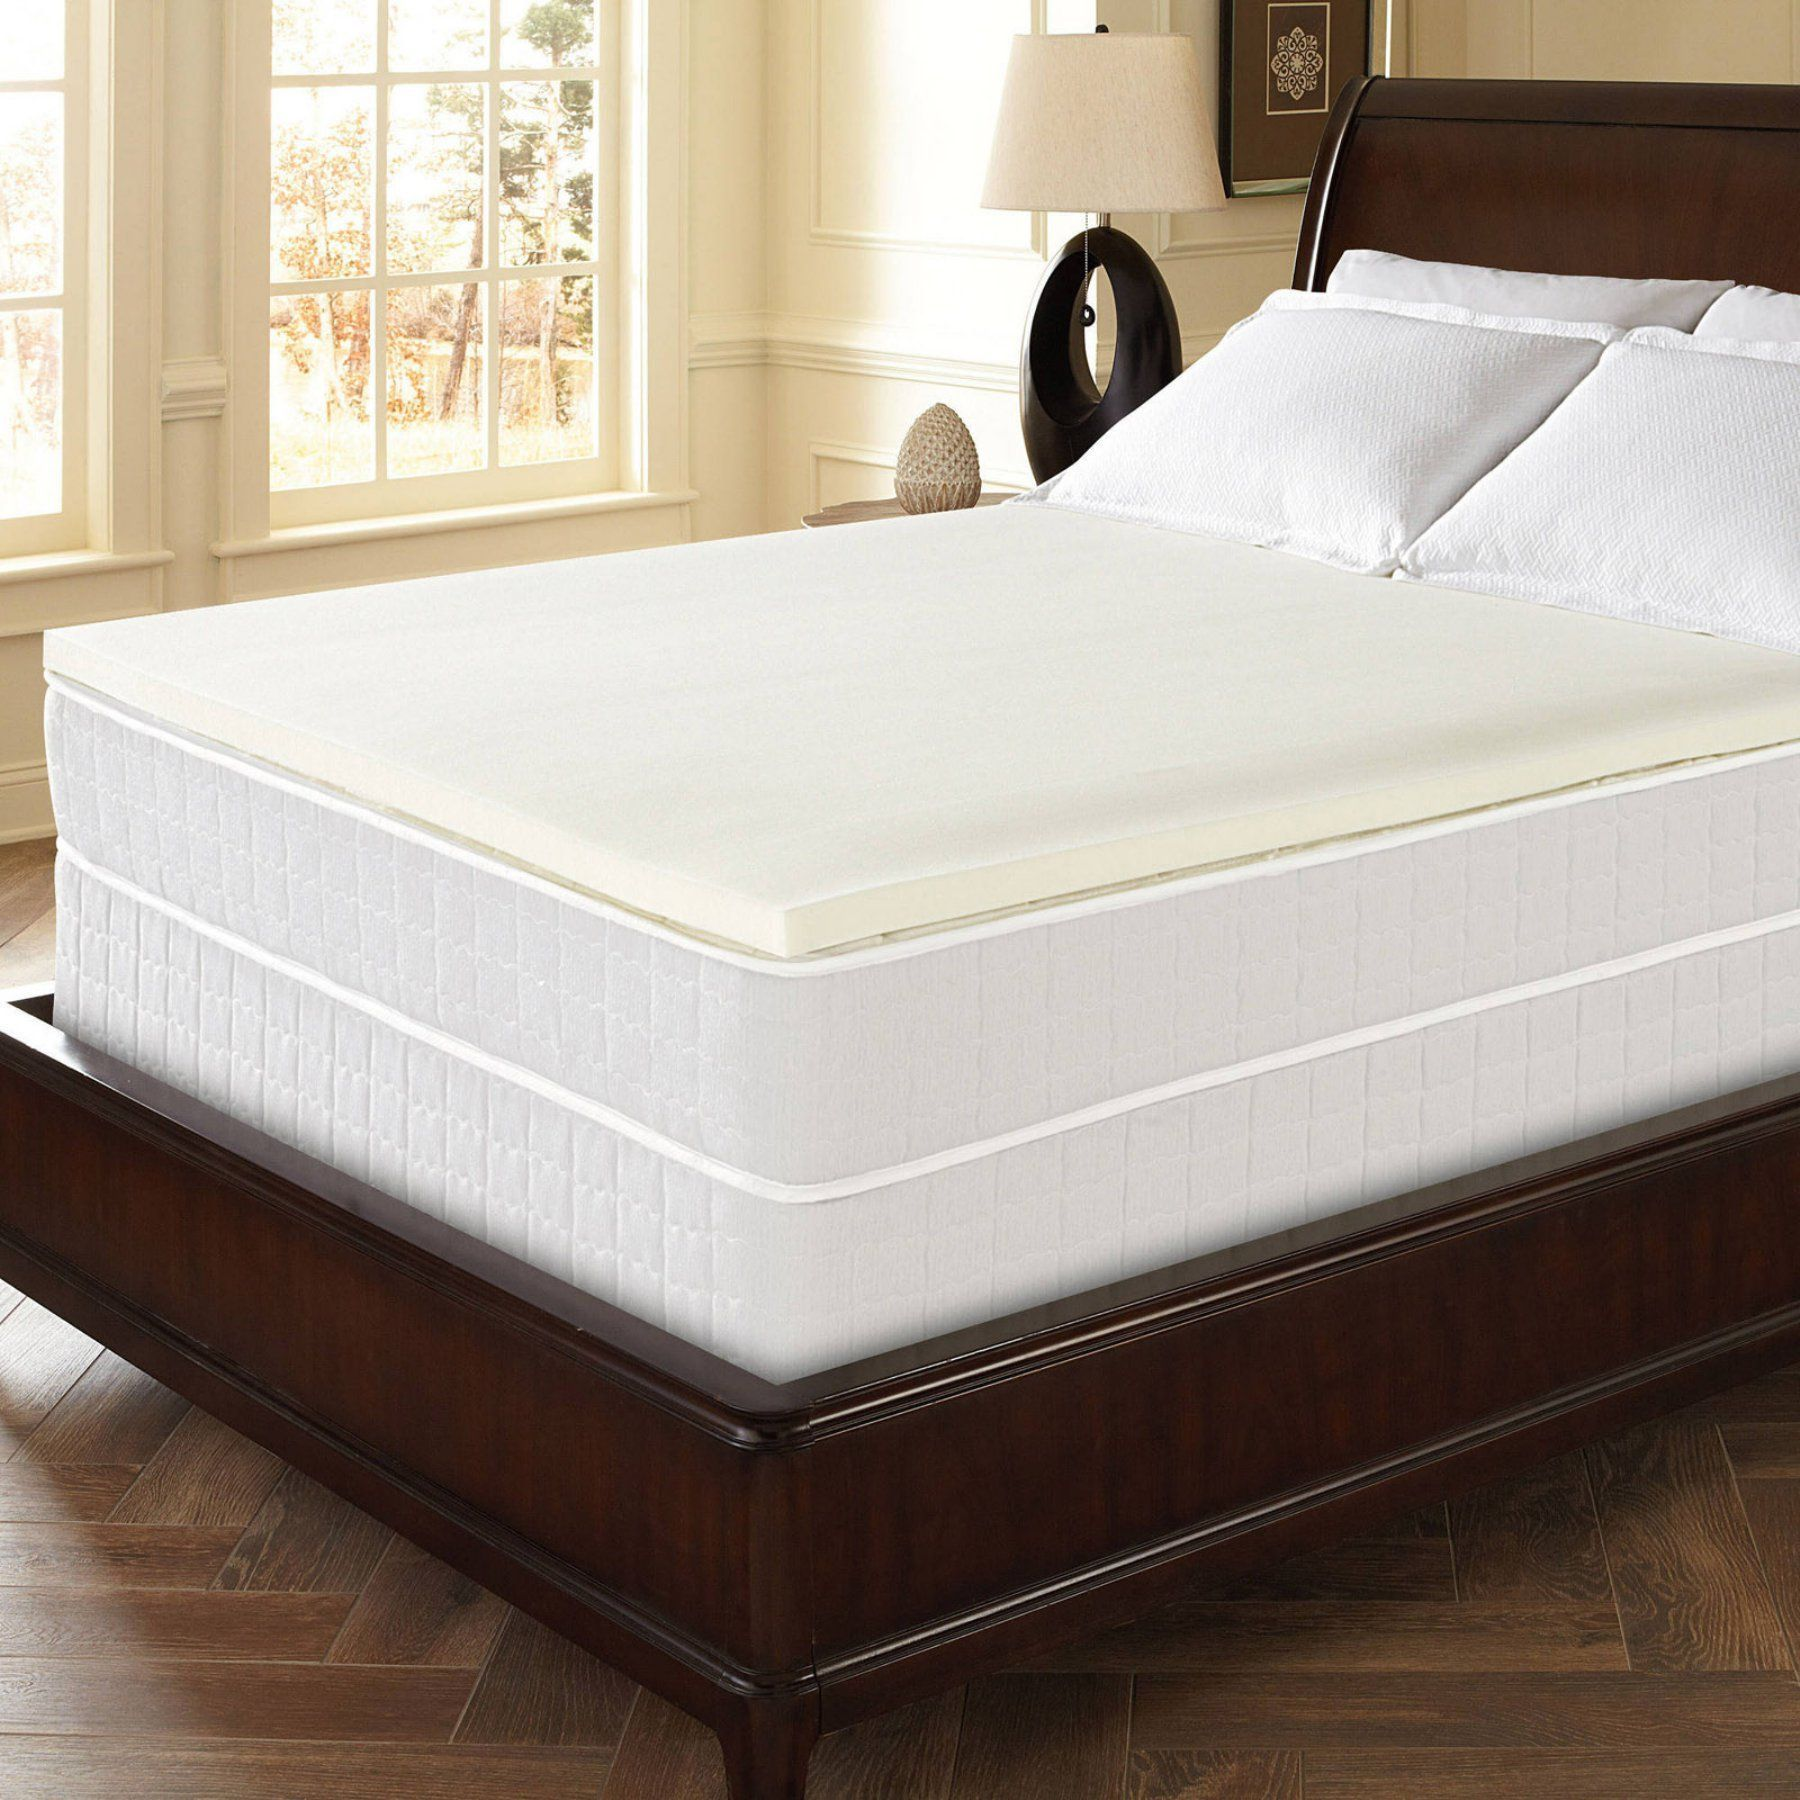 memory foam topper for a sumptuous sleep your mattress will look